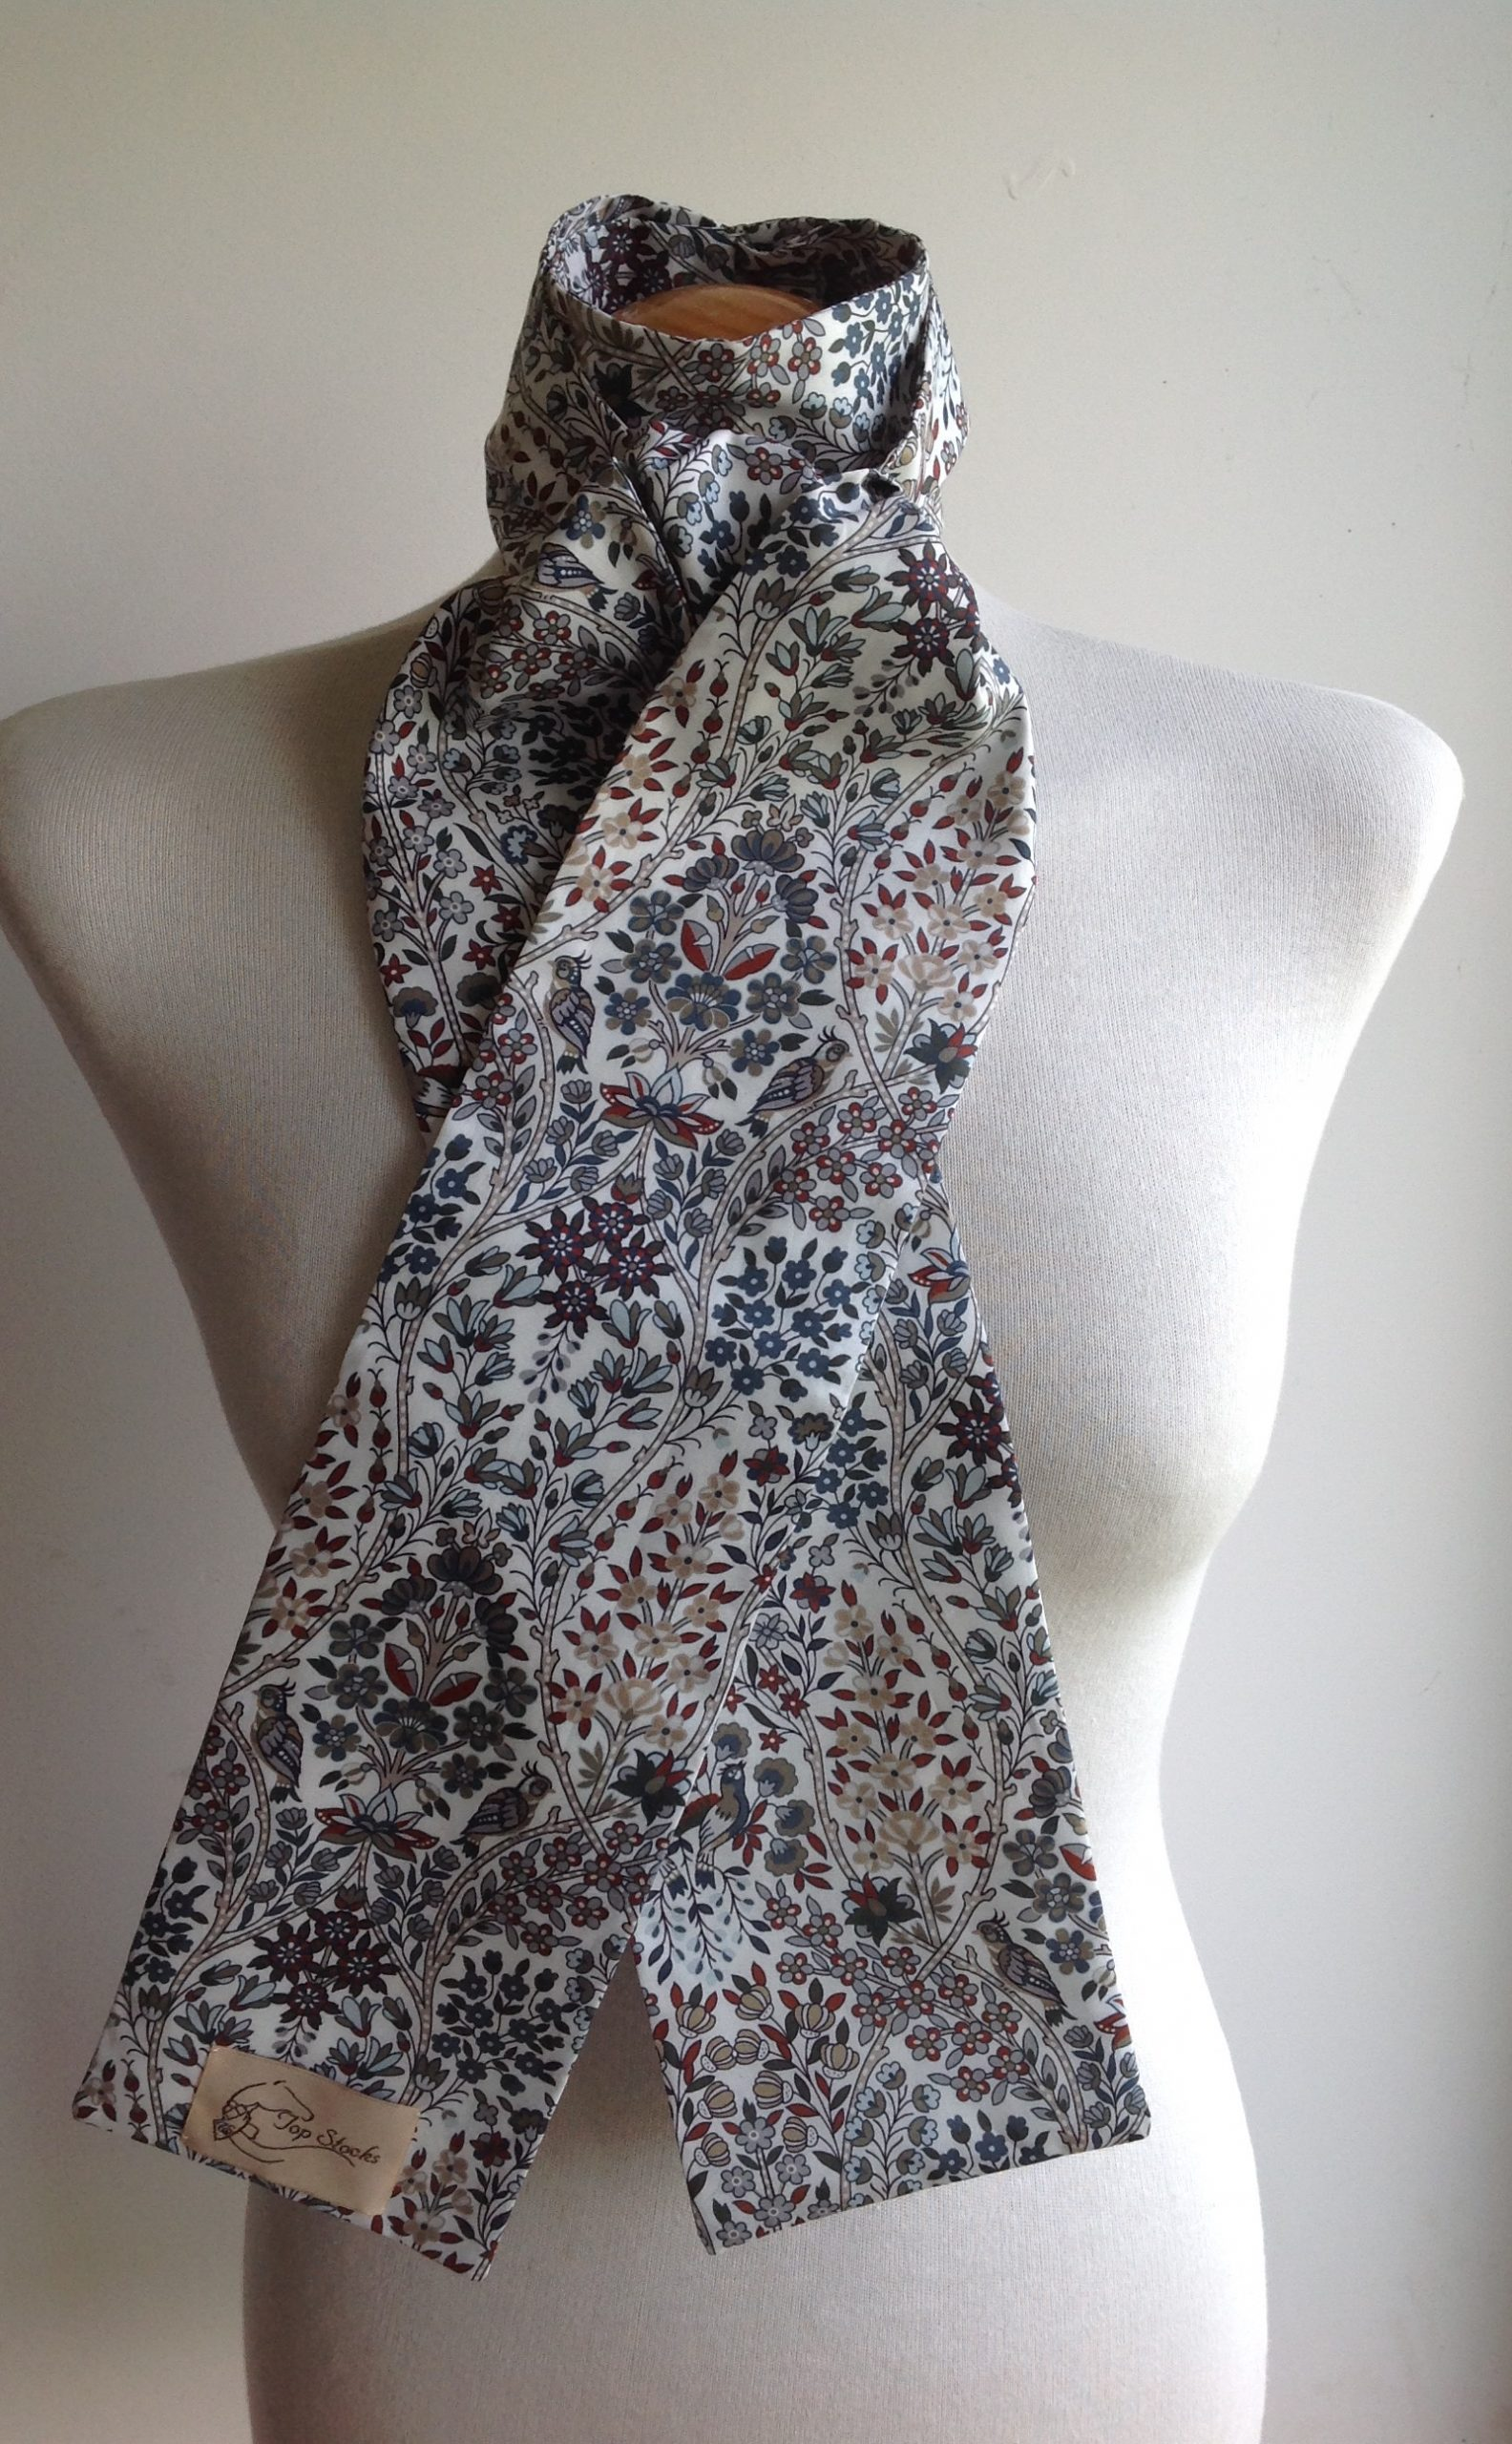 Shaped to tie Liberty tana lawn stock - Kensington Park grey multi